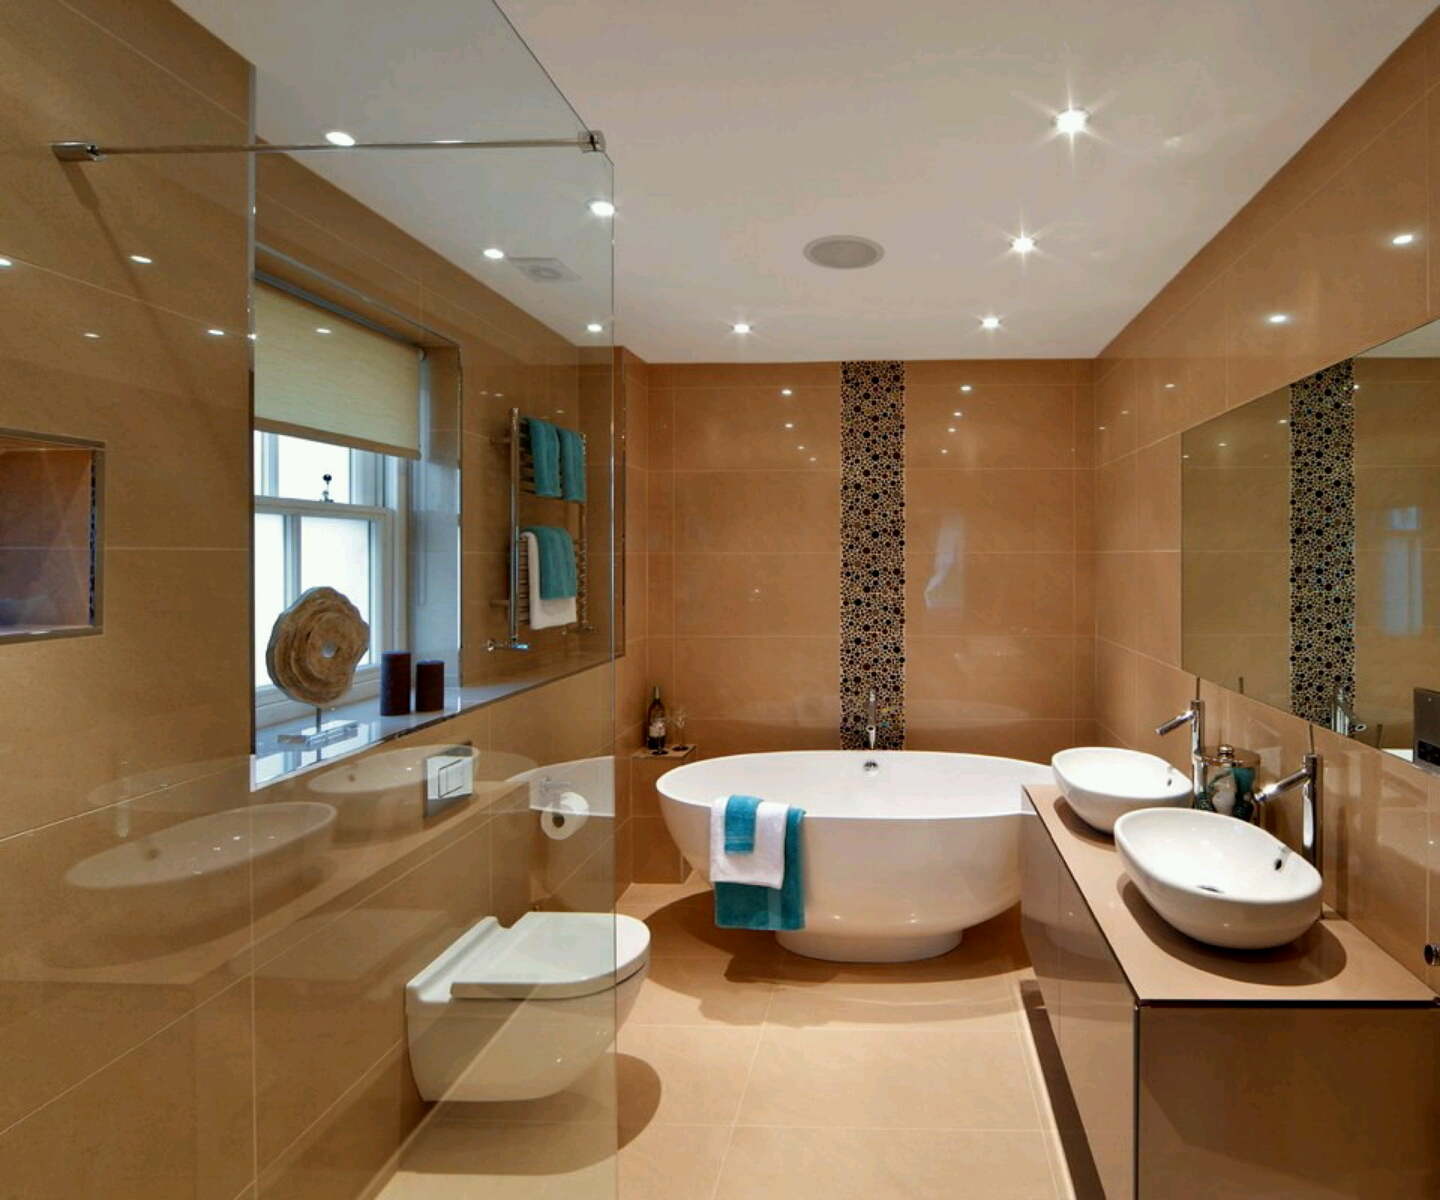 25 small but luxury bathroom design ideas Bathroom decor ideas images